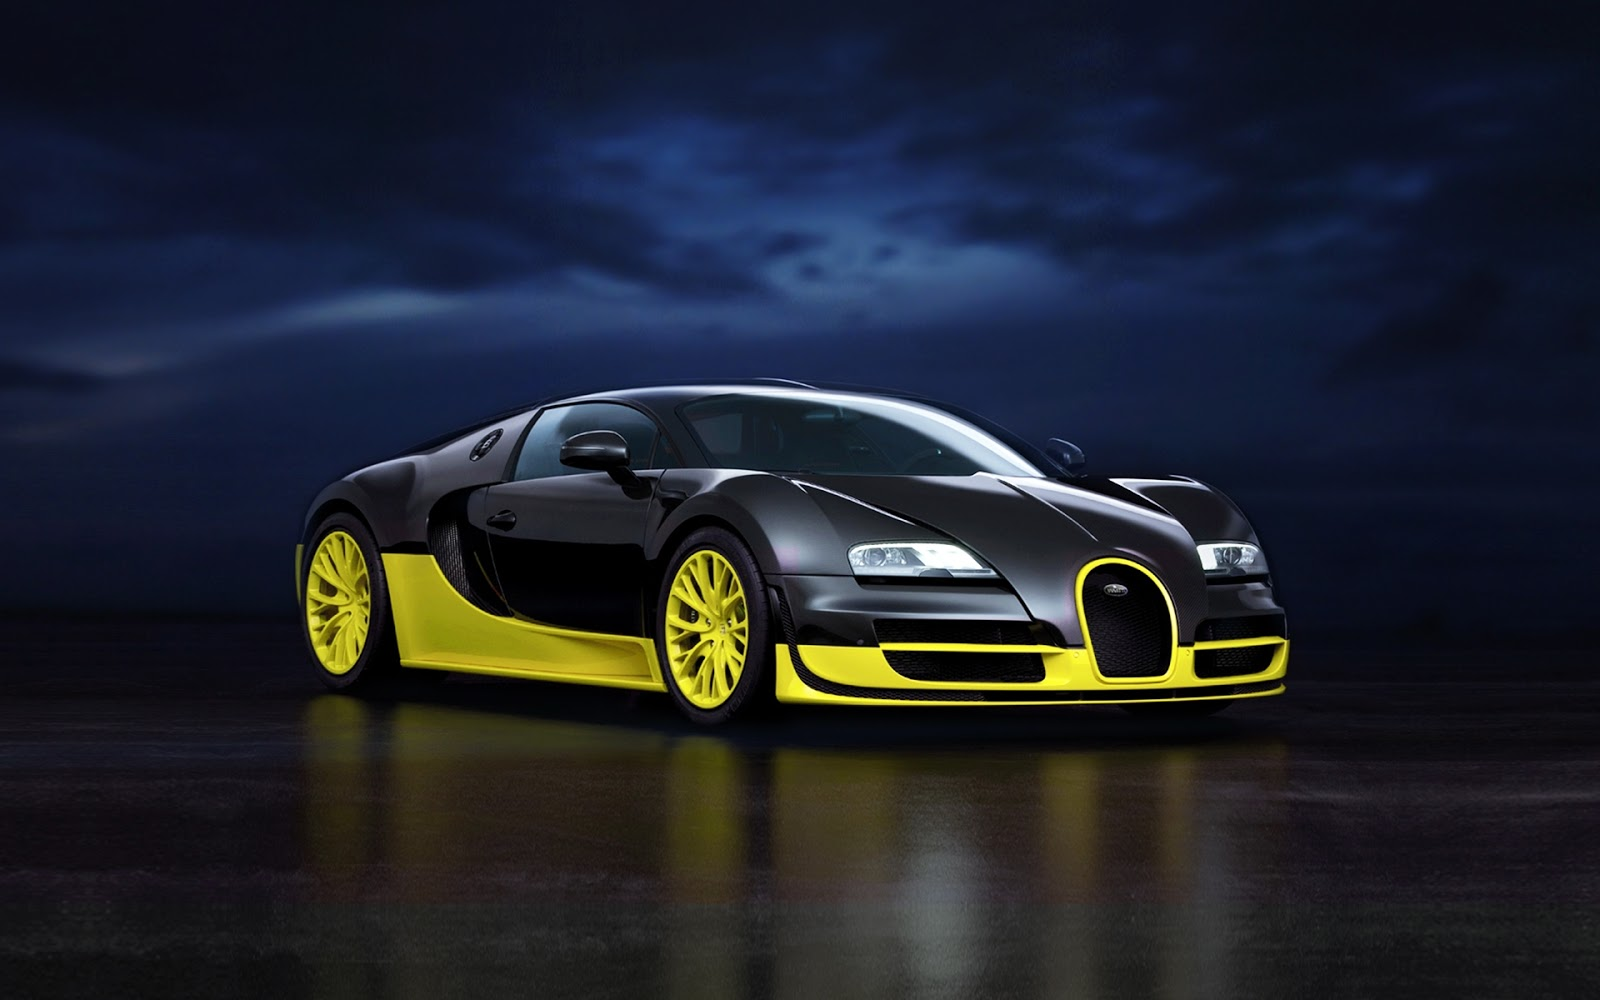 wallpapers cars new hd 2016 full size free download - full hd images